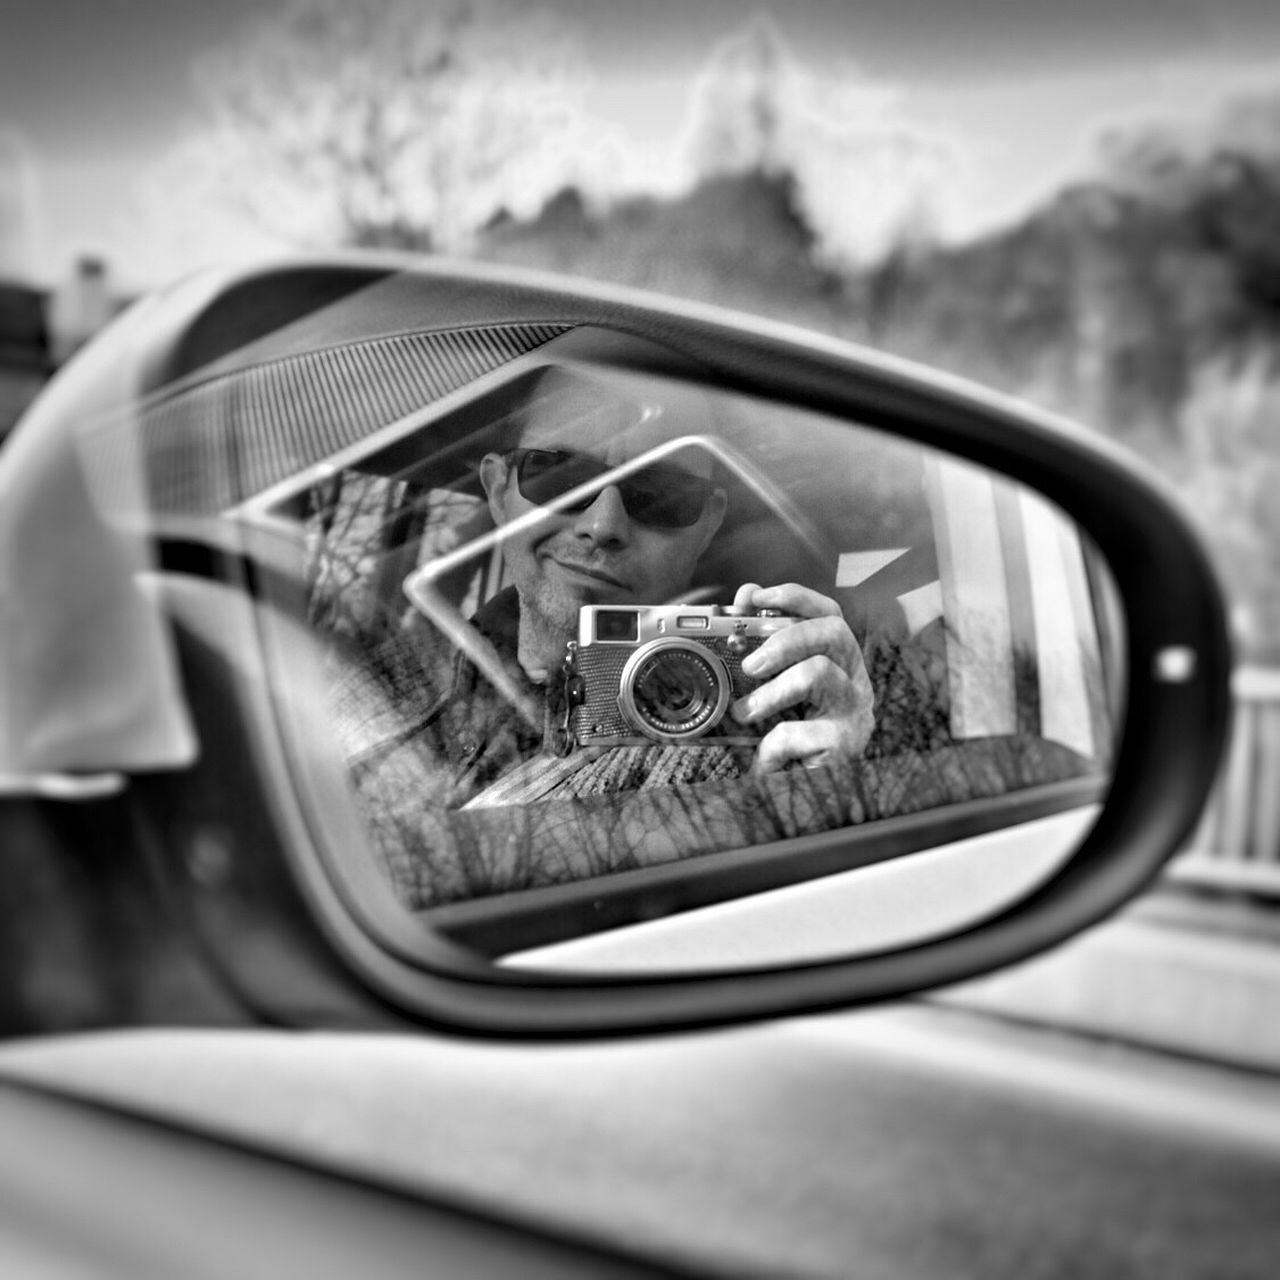 car, side-view mirror, transportation, mirror, mode of transport, land vehicle, reflection, photographing, camera - photographic equipment, one person, real people, outdoors, day, close-up, technology, digital single-lens reflex camera, sky